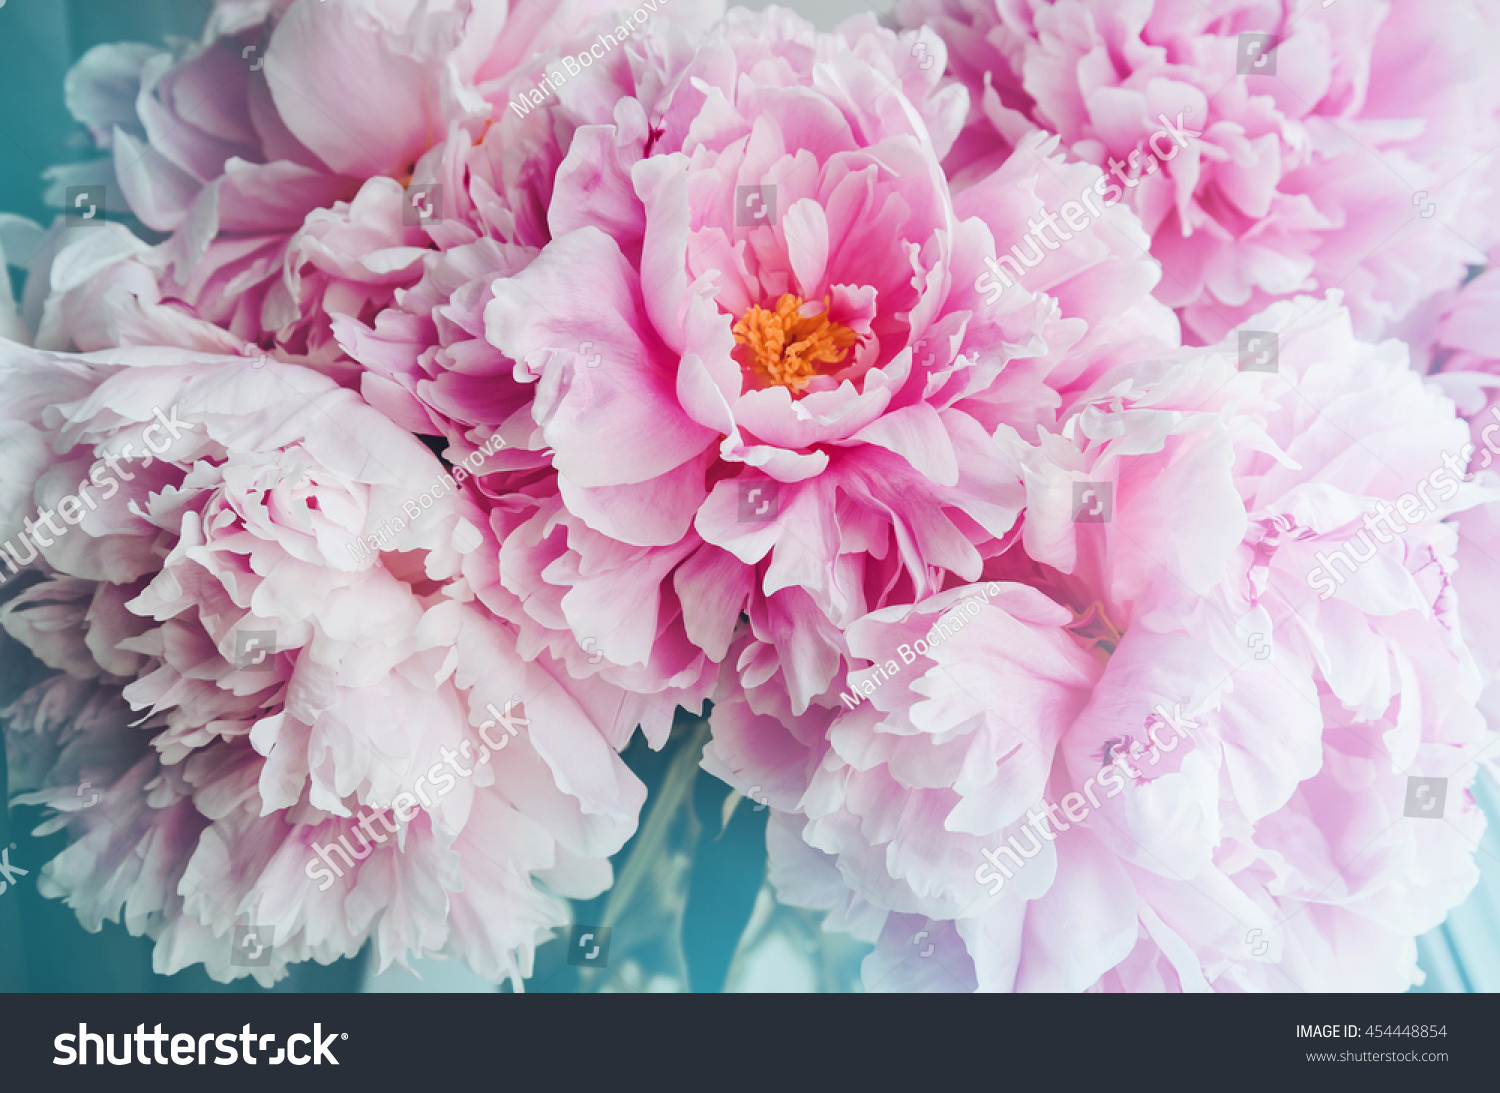 Fresh bunch pink peonies peony roses stock photo 454448854 fresh bunch of pink peonies peony roses flowers white with blue effect shine pastel dhlflorist Images